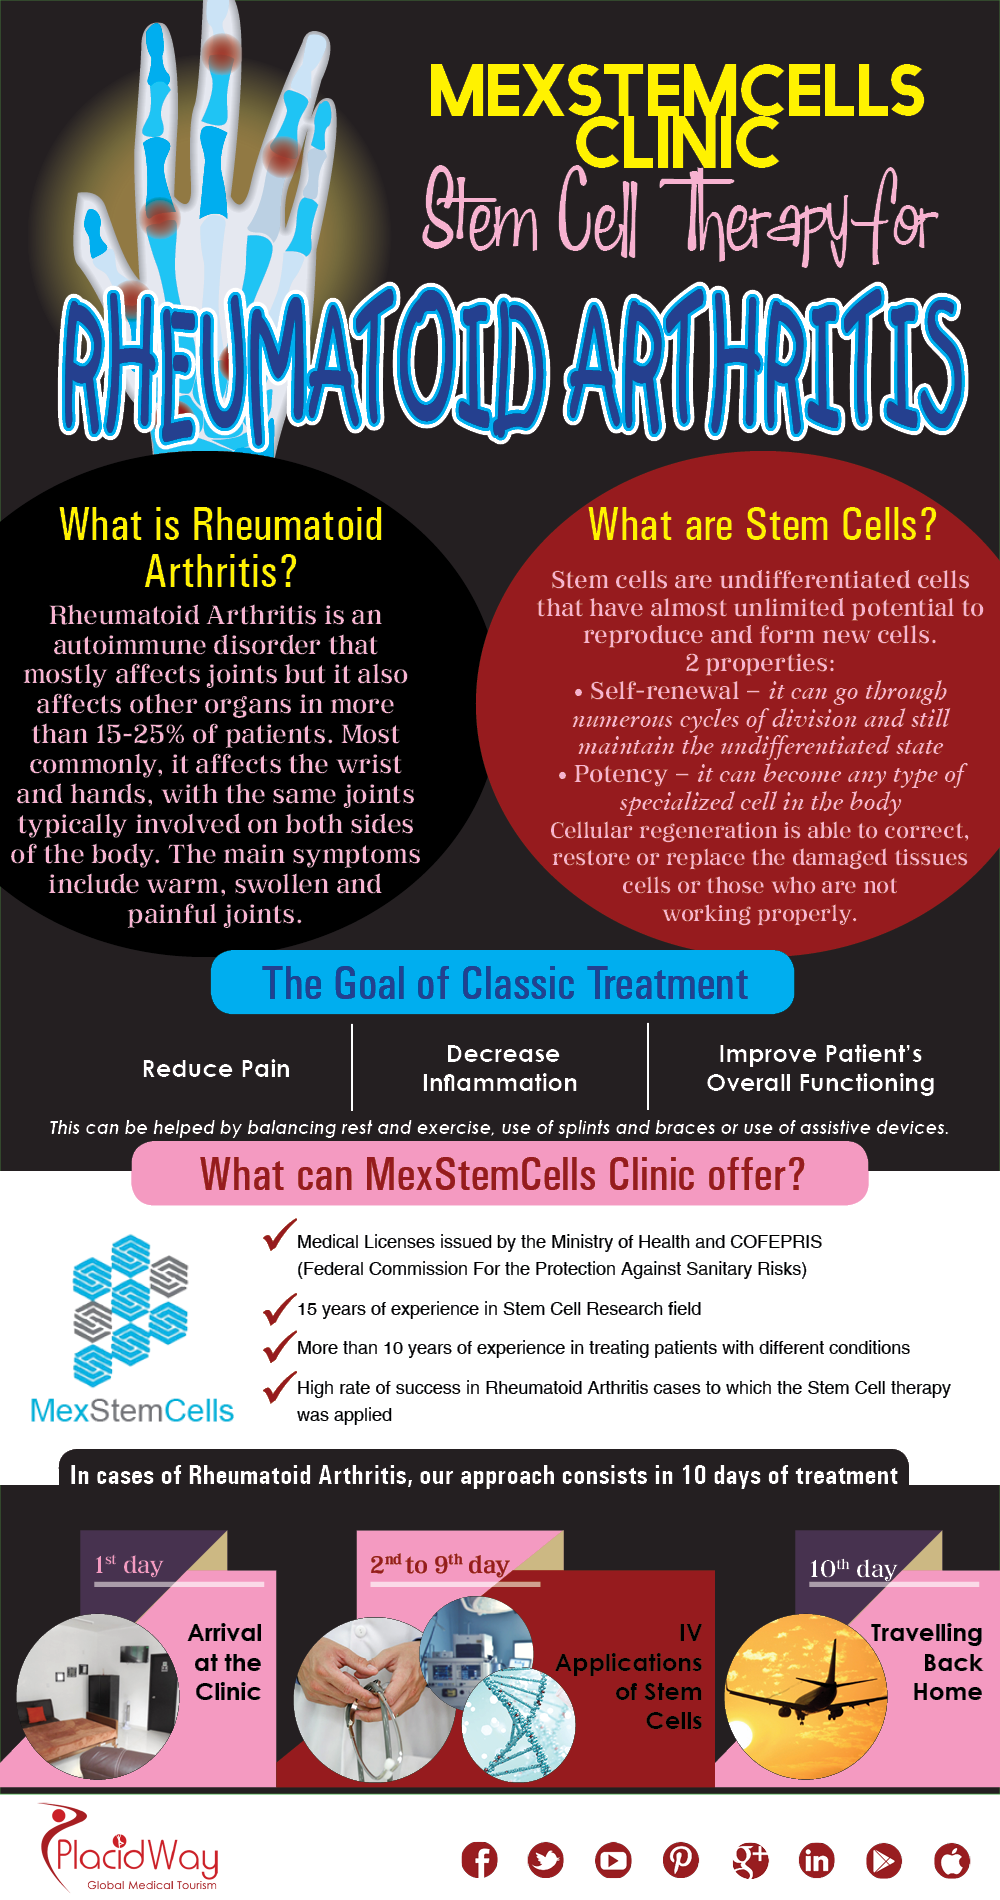 Infographics: MexStemCells Clinic Stem Cell Therapy for Rheumatoid Arthritis